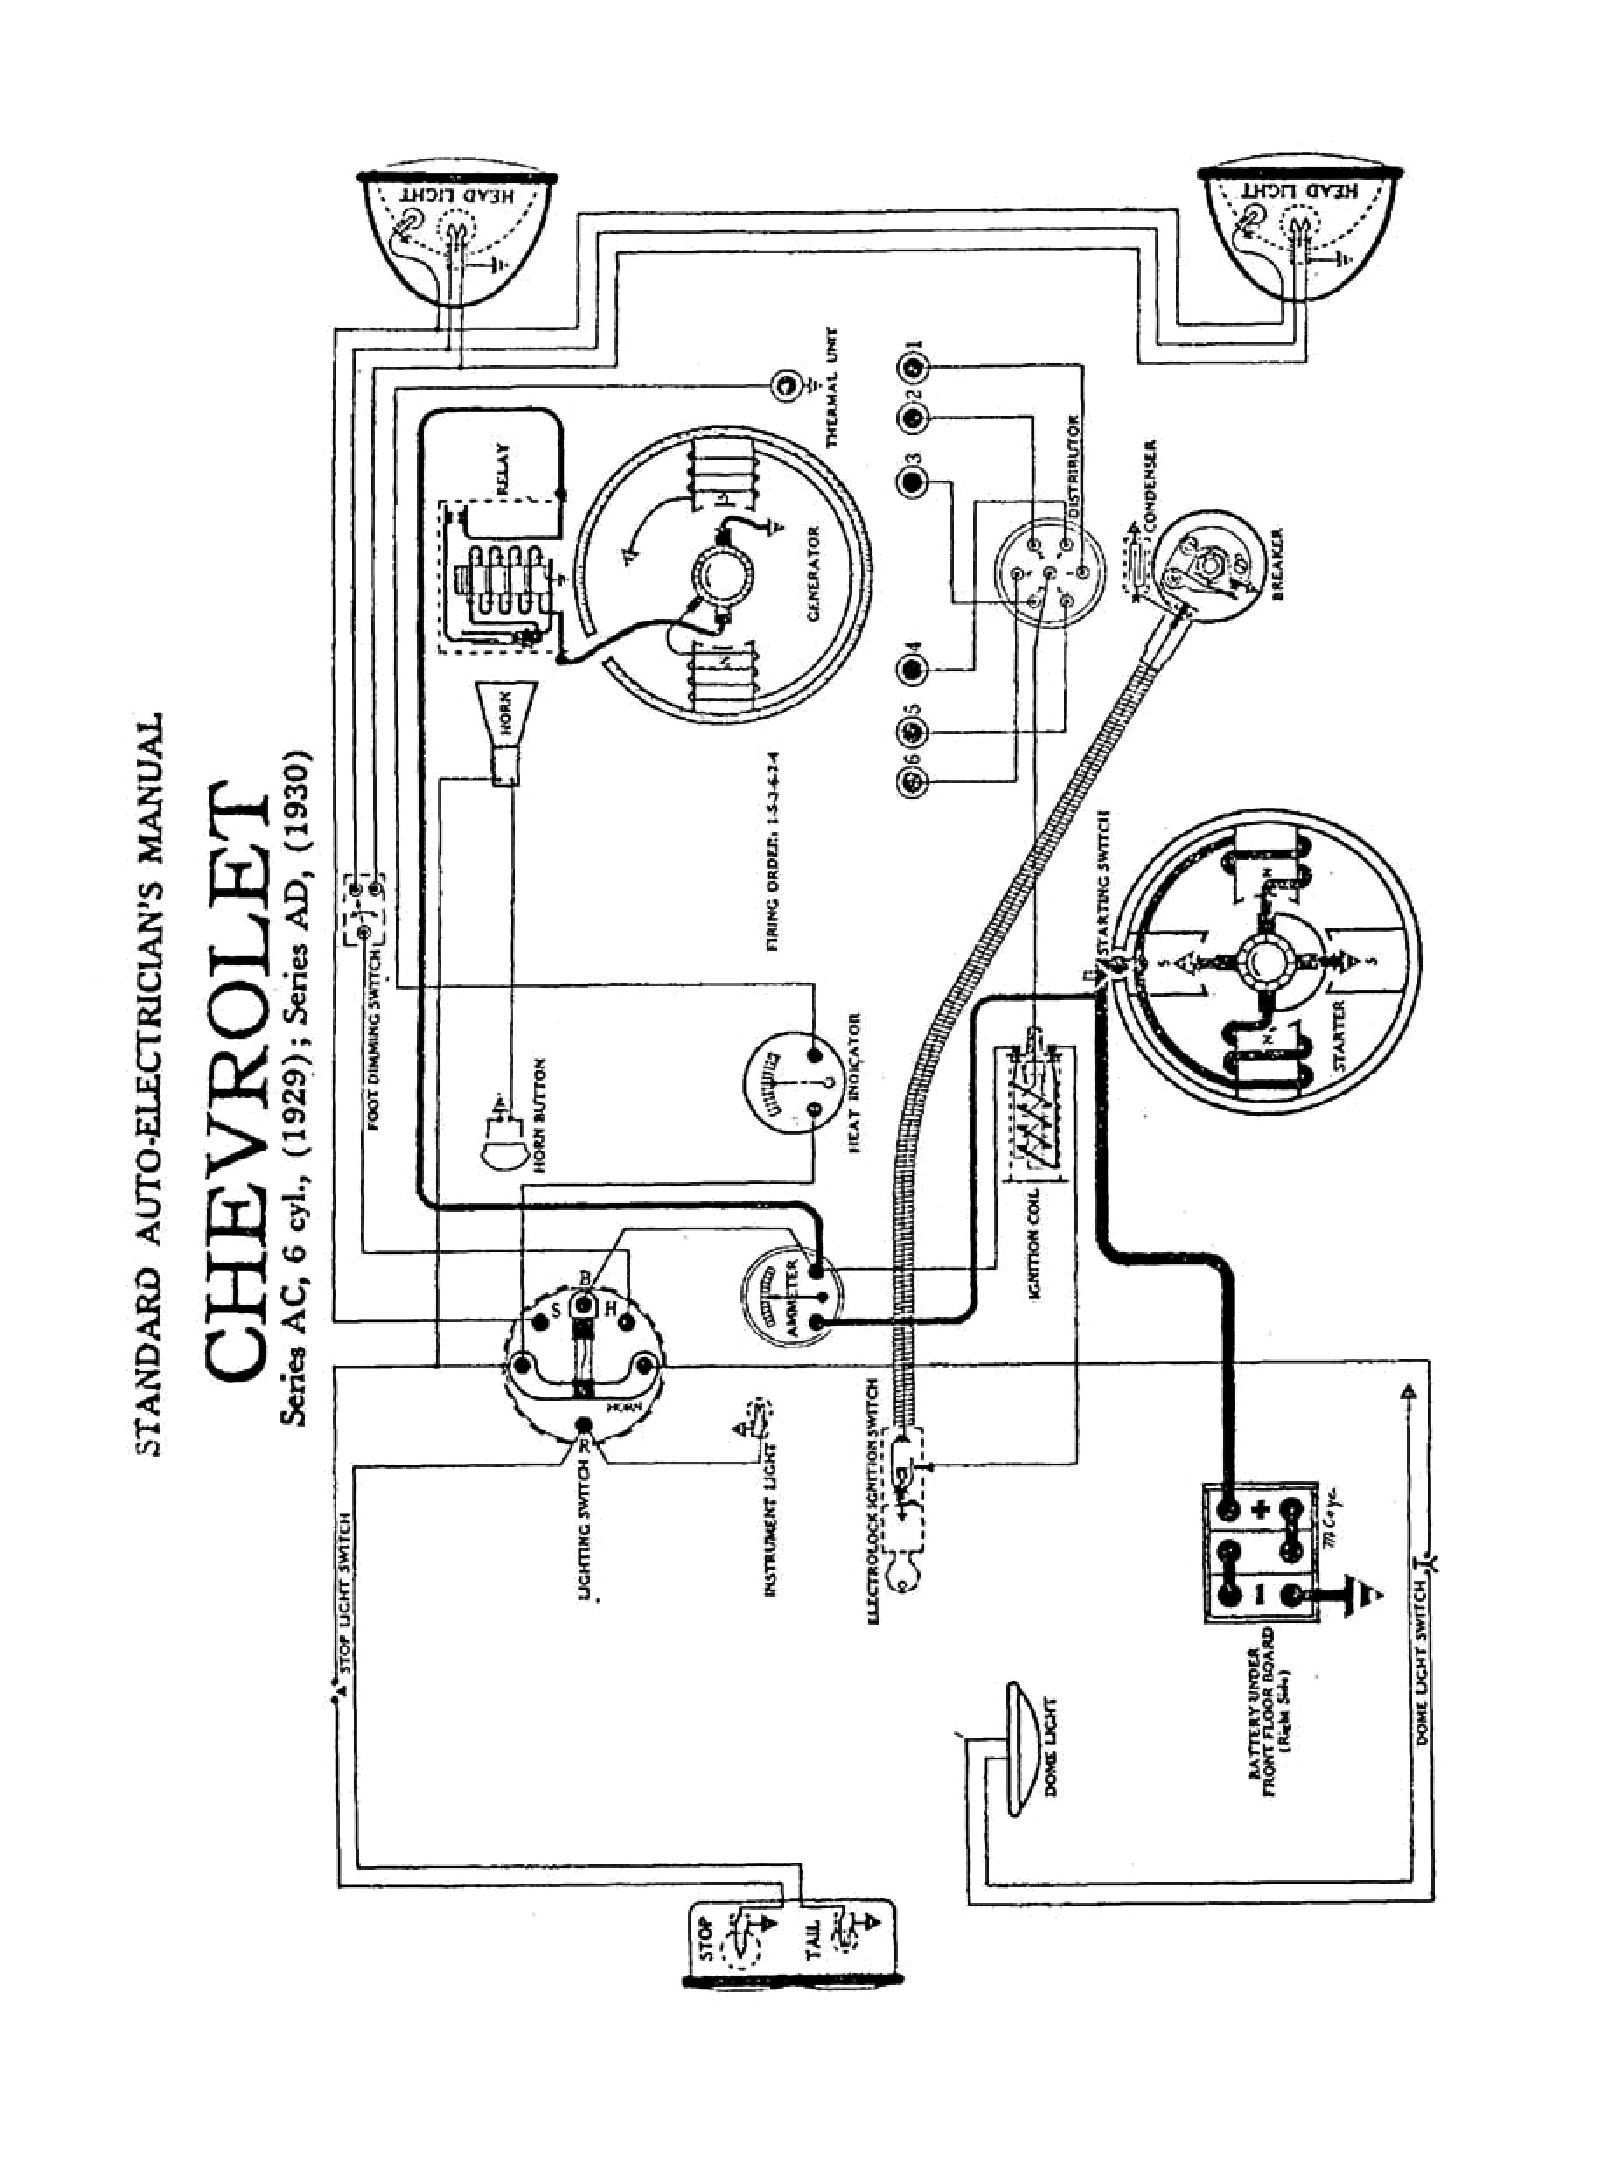 volvo etm wiring diagram   apktodownload com